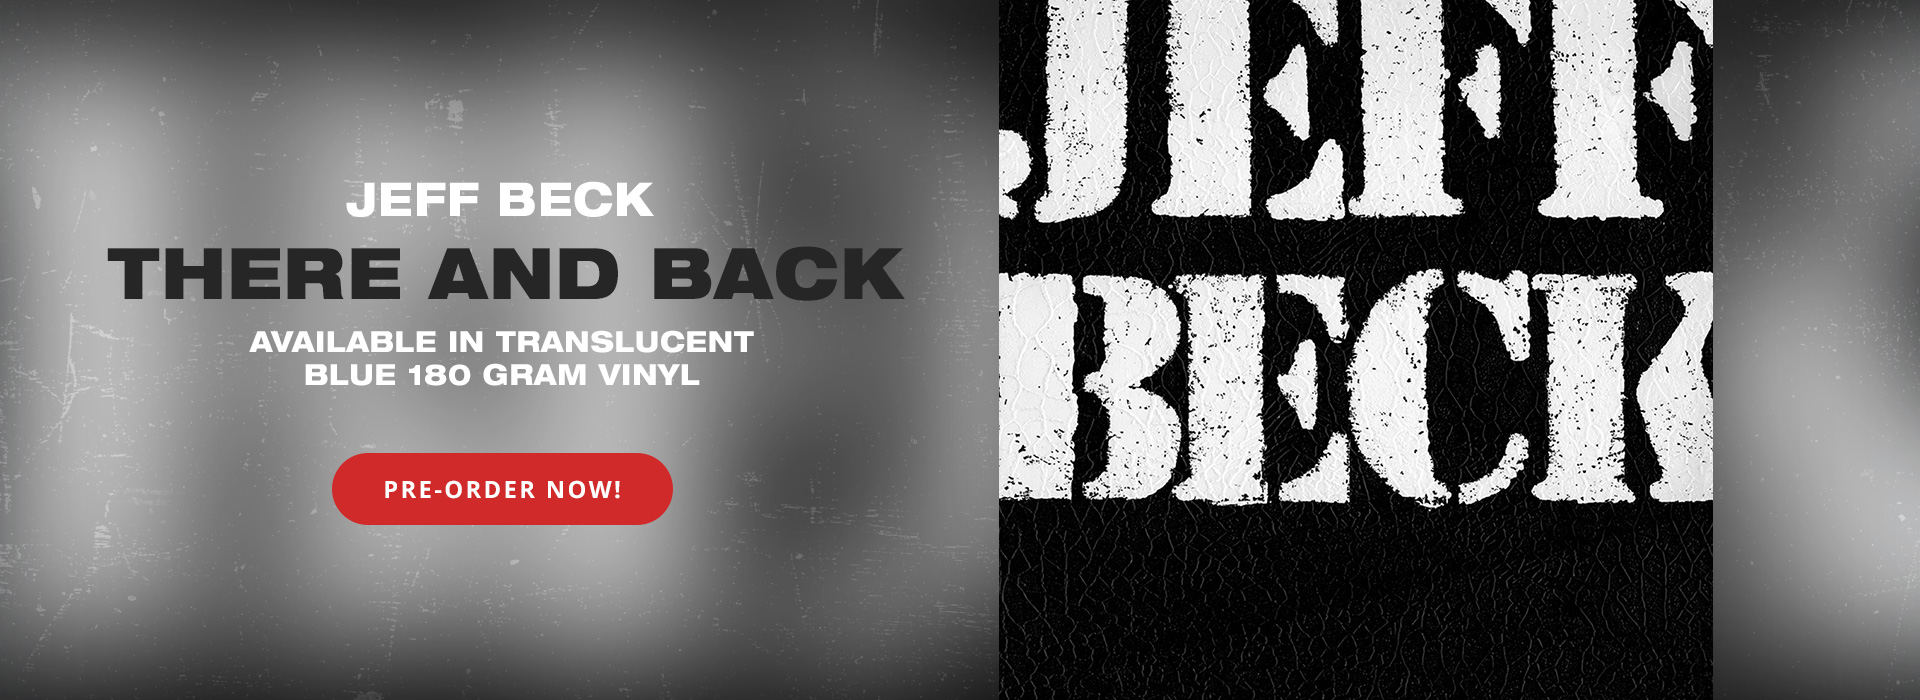 Jeff Beck | There And Back